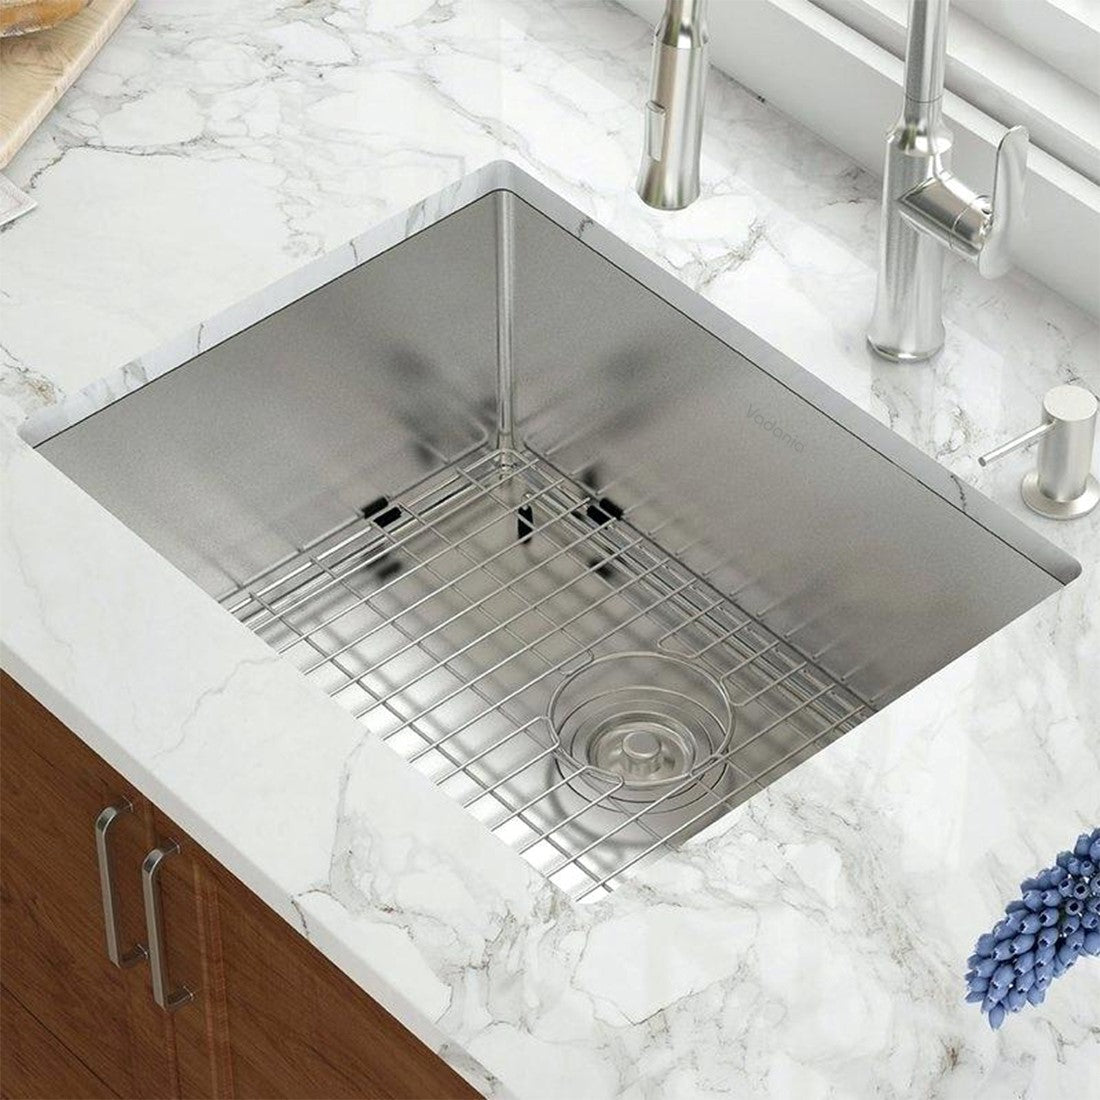 How to select a good kitchen sink?(4) – Size | VADANIA